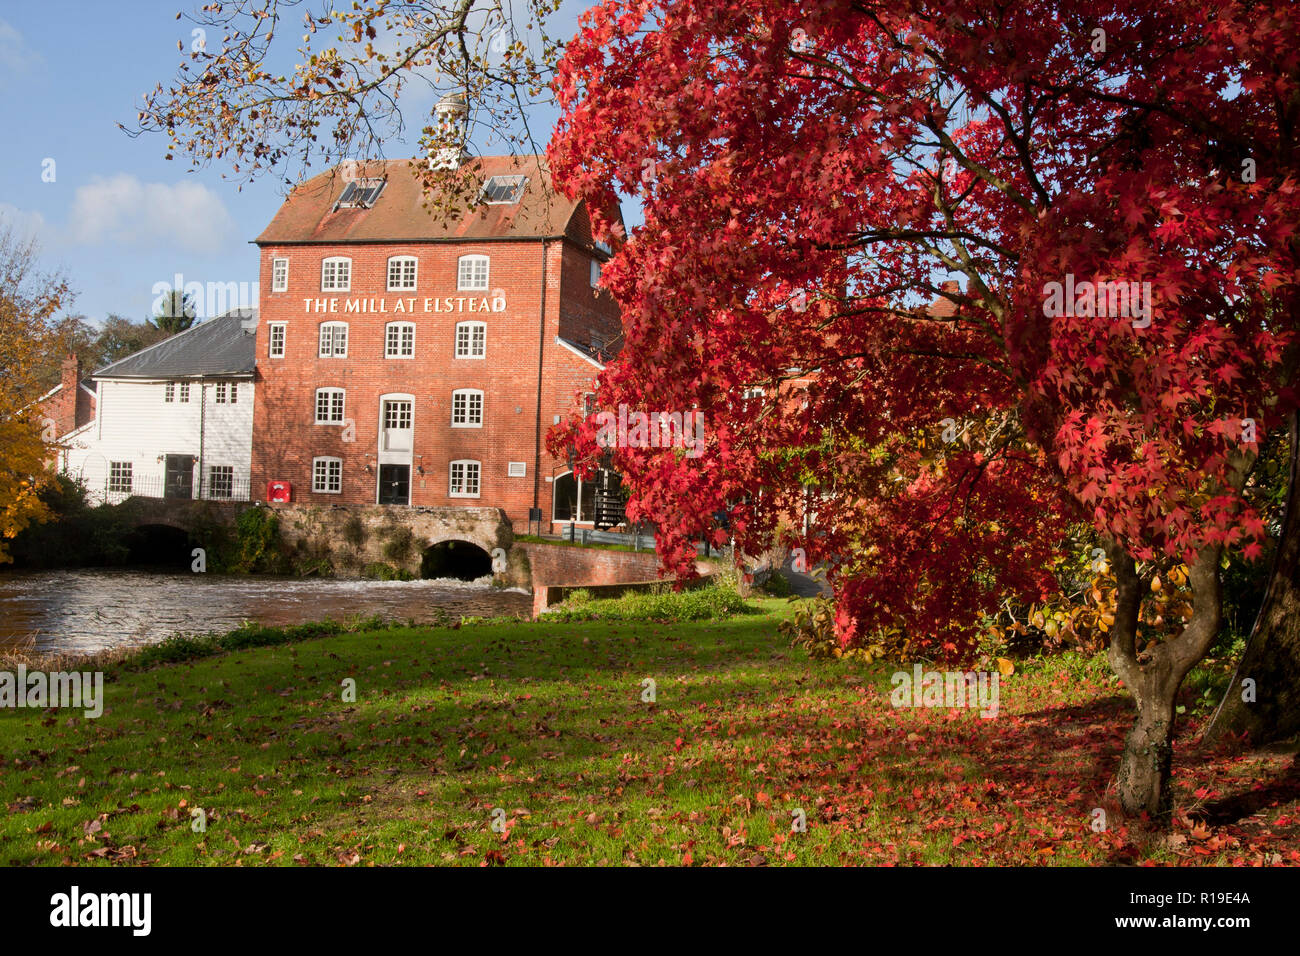 the old watermill at Elstead in autumn, Surrey (now a restaurant), England Stock Photo